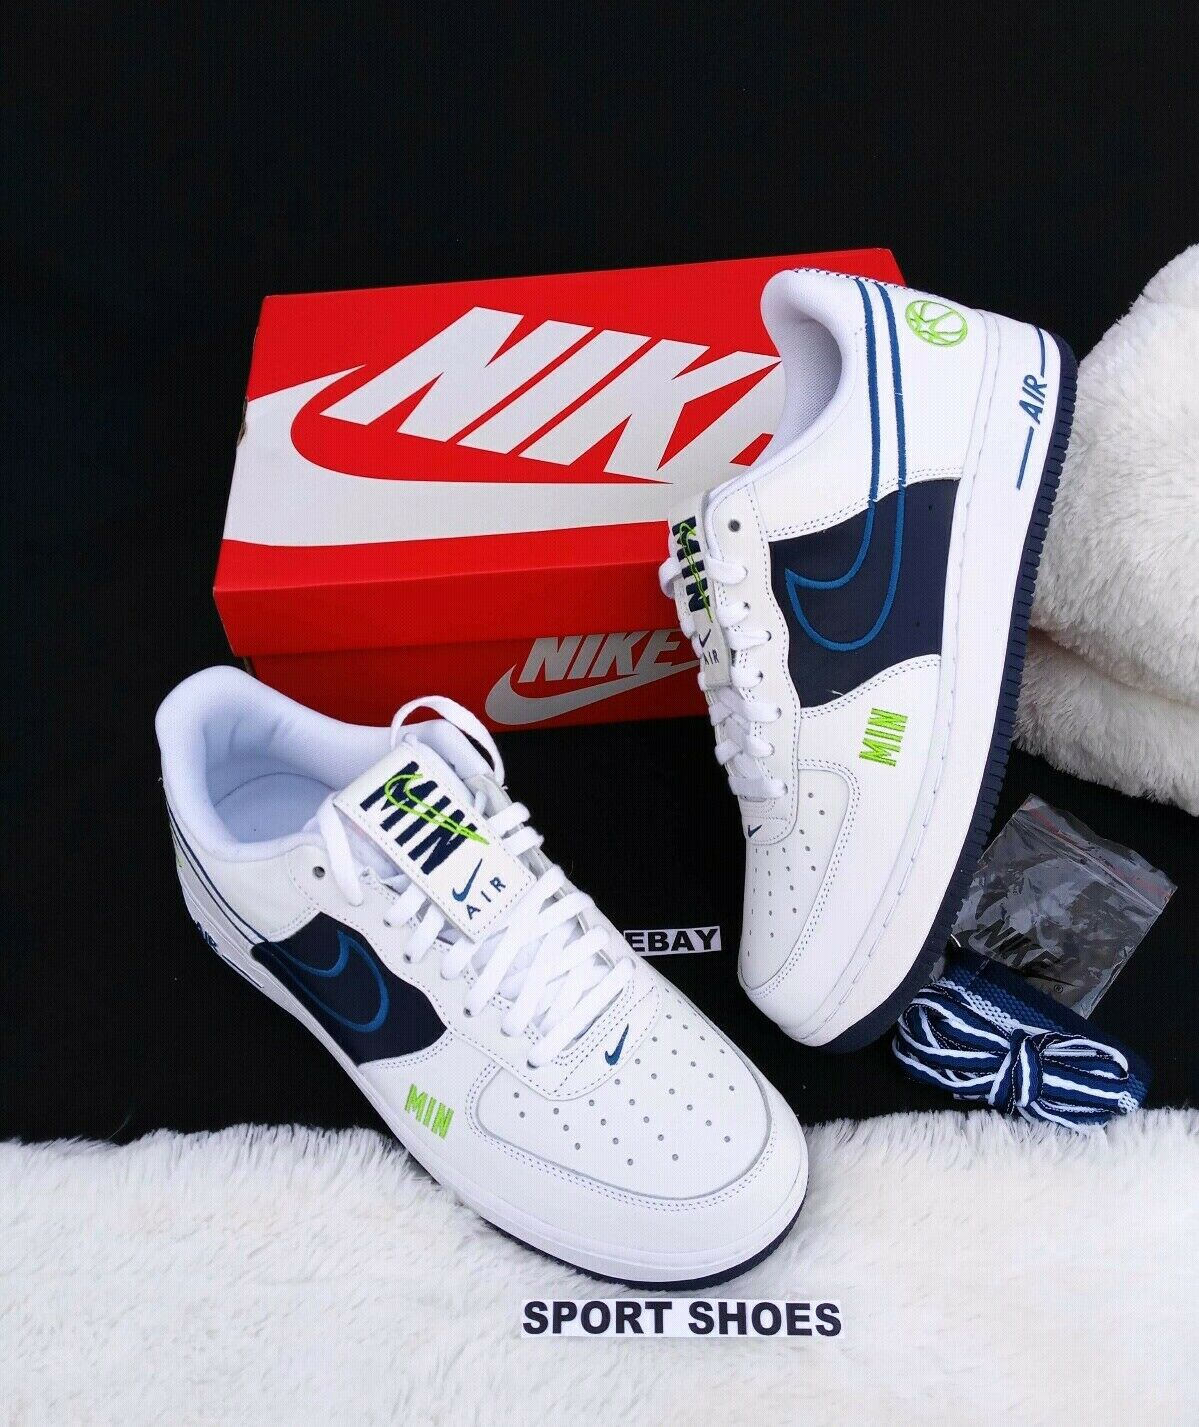 11.5 MEN'S NIKE AIR FORCE MIN 1 AF1 LOW RETRO WHITE NAVY SNEAKERS AQ4002 993